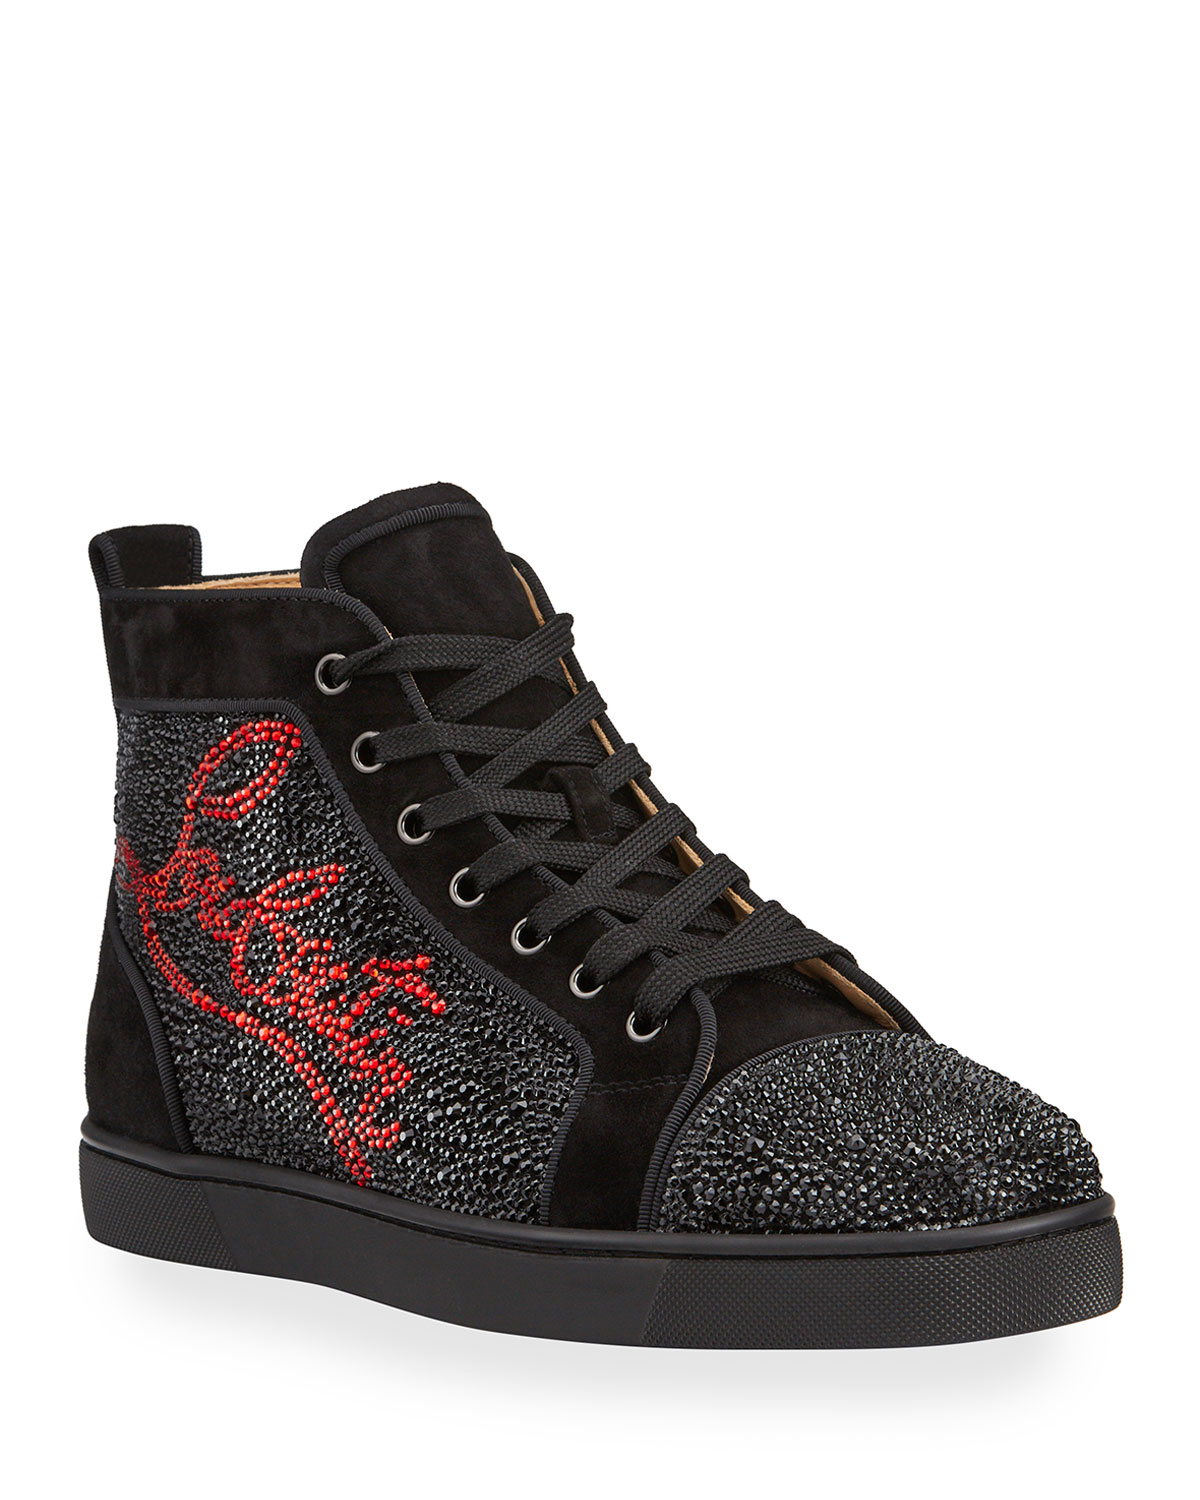 Christian Louboutin Crystals MEN'S LOUIS LOGO STRASS SUEDE HIGH-TOP SNEAKERS